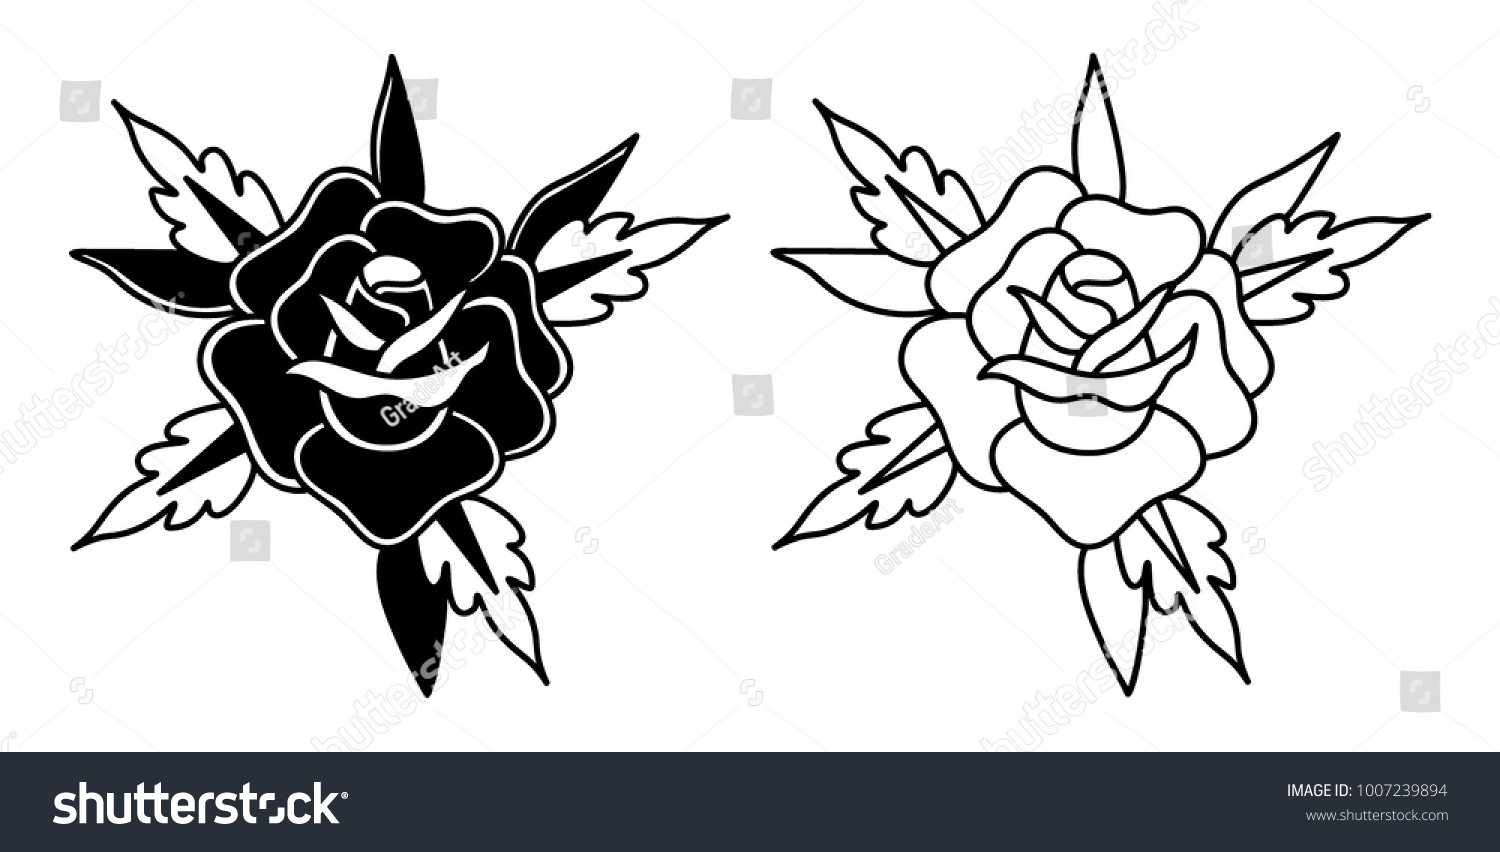 Black and white old school roses